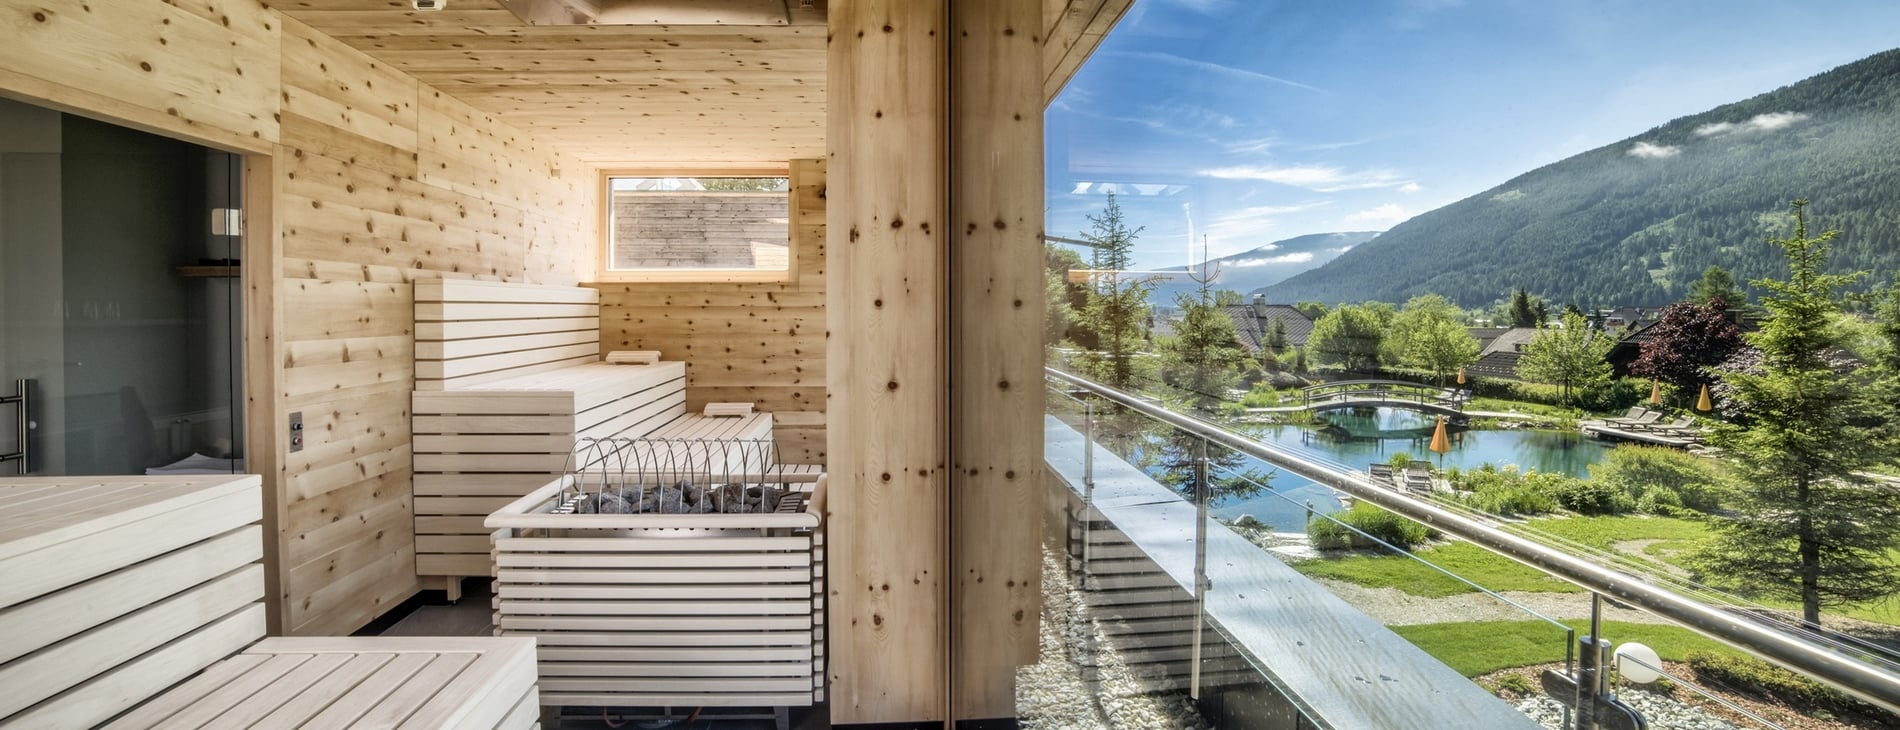 Deluxe relaxation during your spa holiday